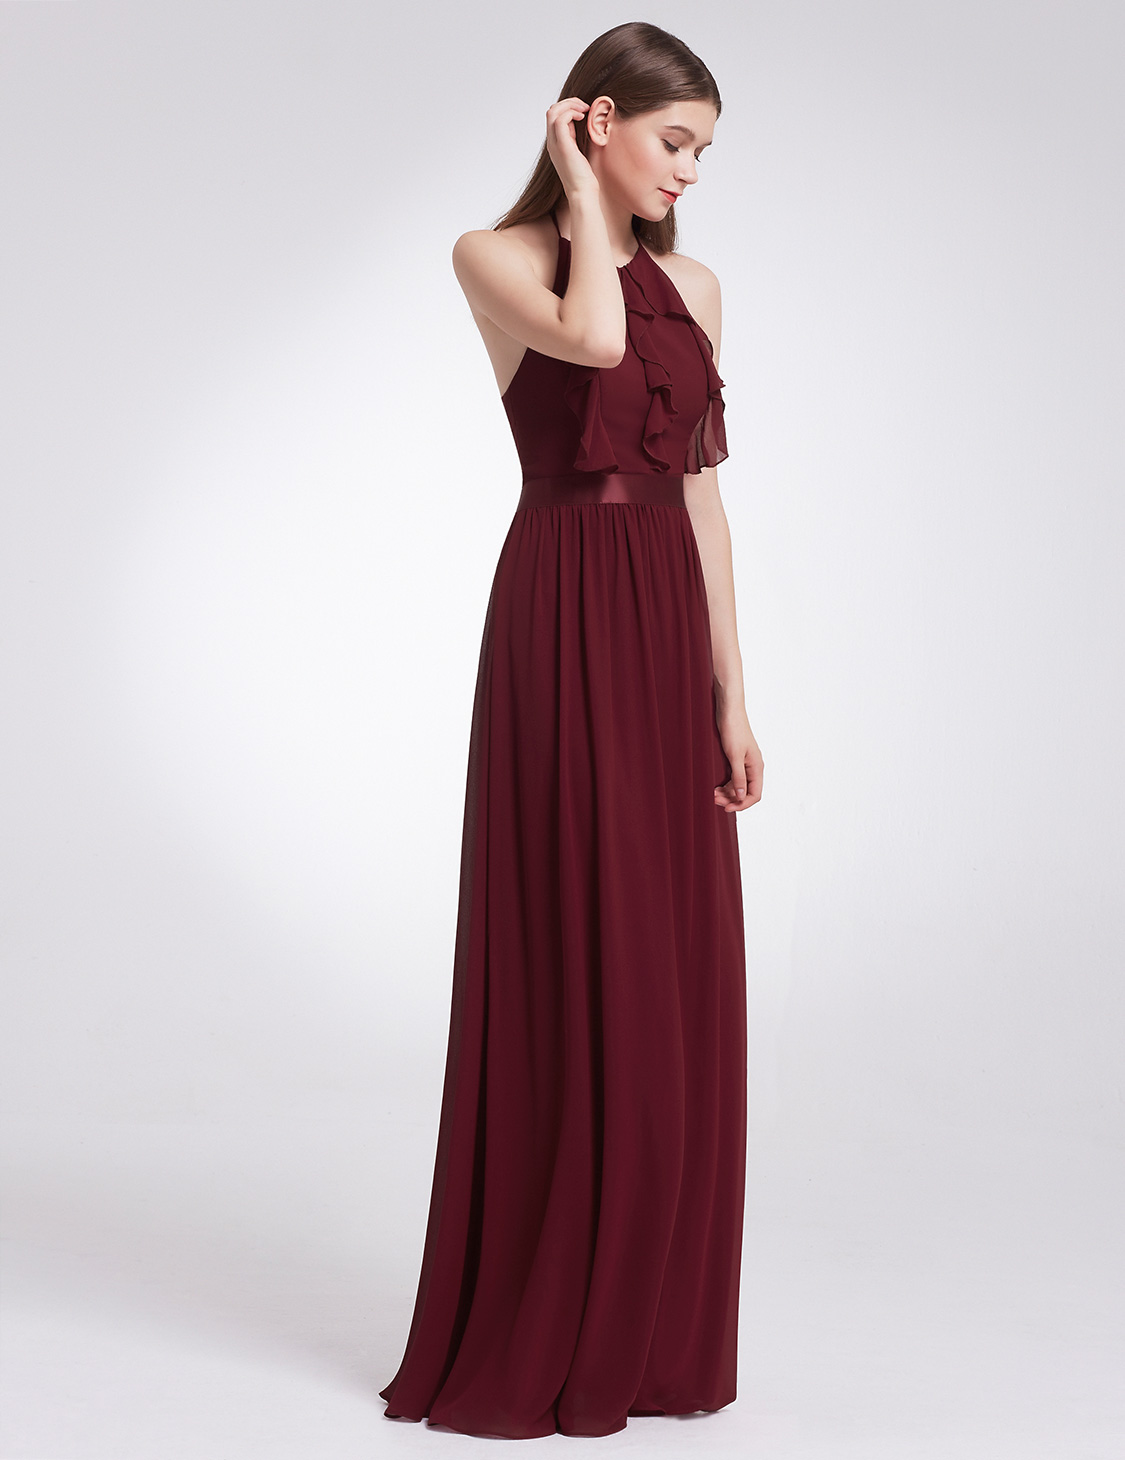 Ever-pretty-Halter-Formal-Evening-Party-Dress-Bridesmaid-Wedding-Long-Gown-07201